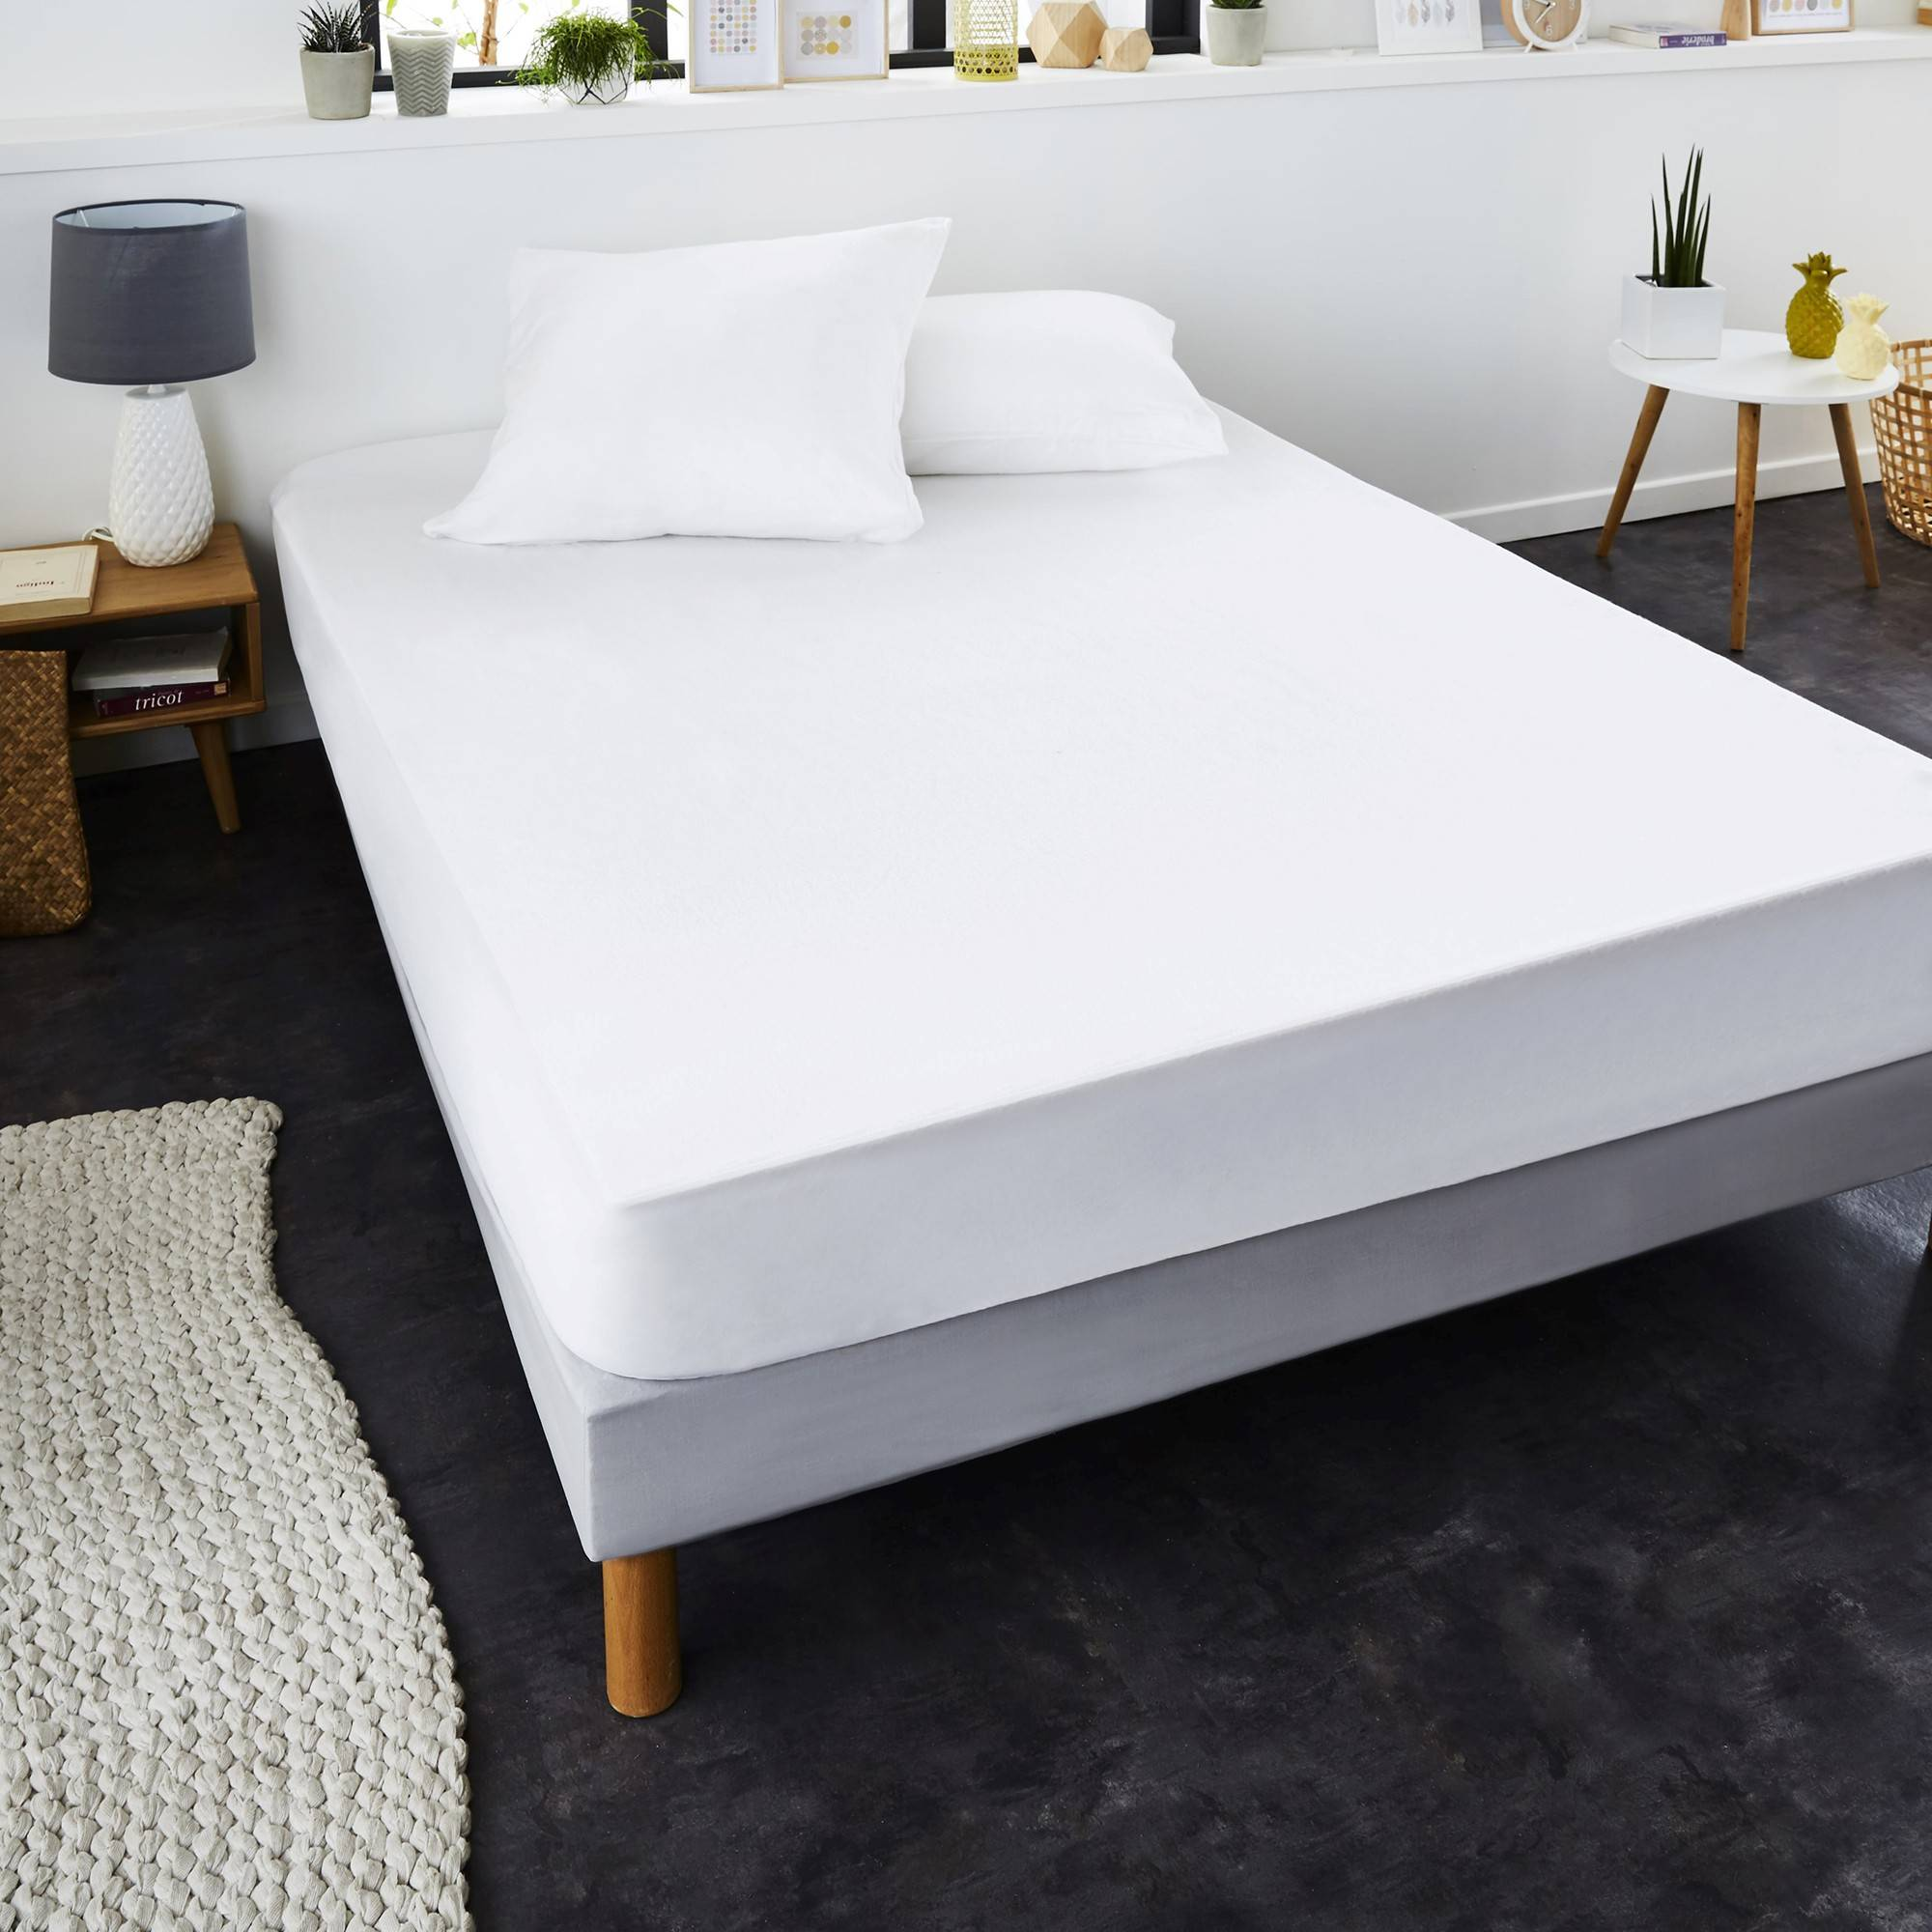 Protège matelas 2 pers 140x200cm - blanc - Protège-matelas anti-acariens Greenfirst® molleton absorbant - Blancheporte